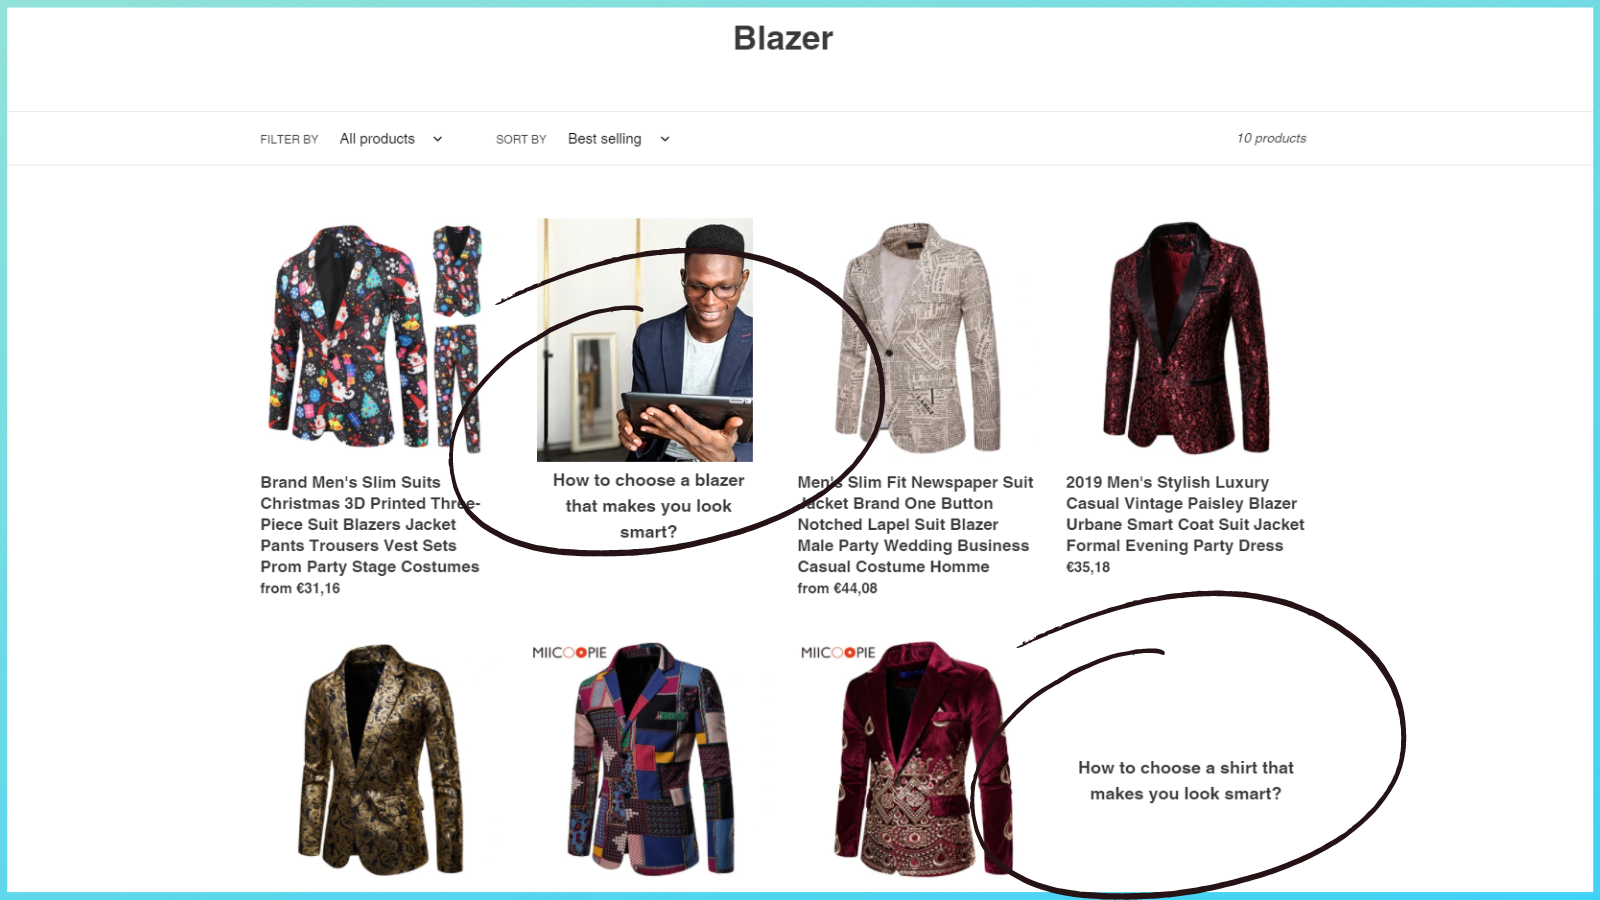 Blog articles in collection with an image - example 1